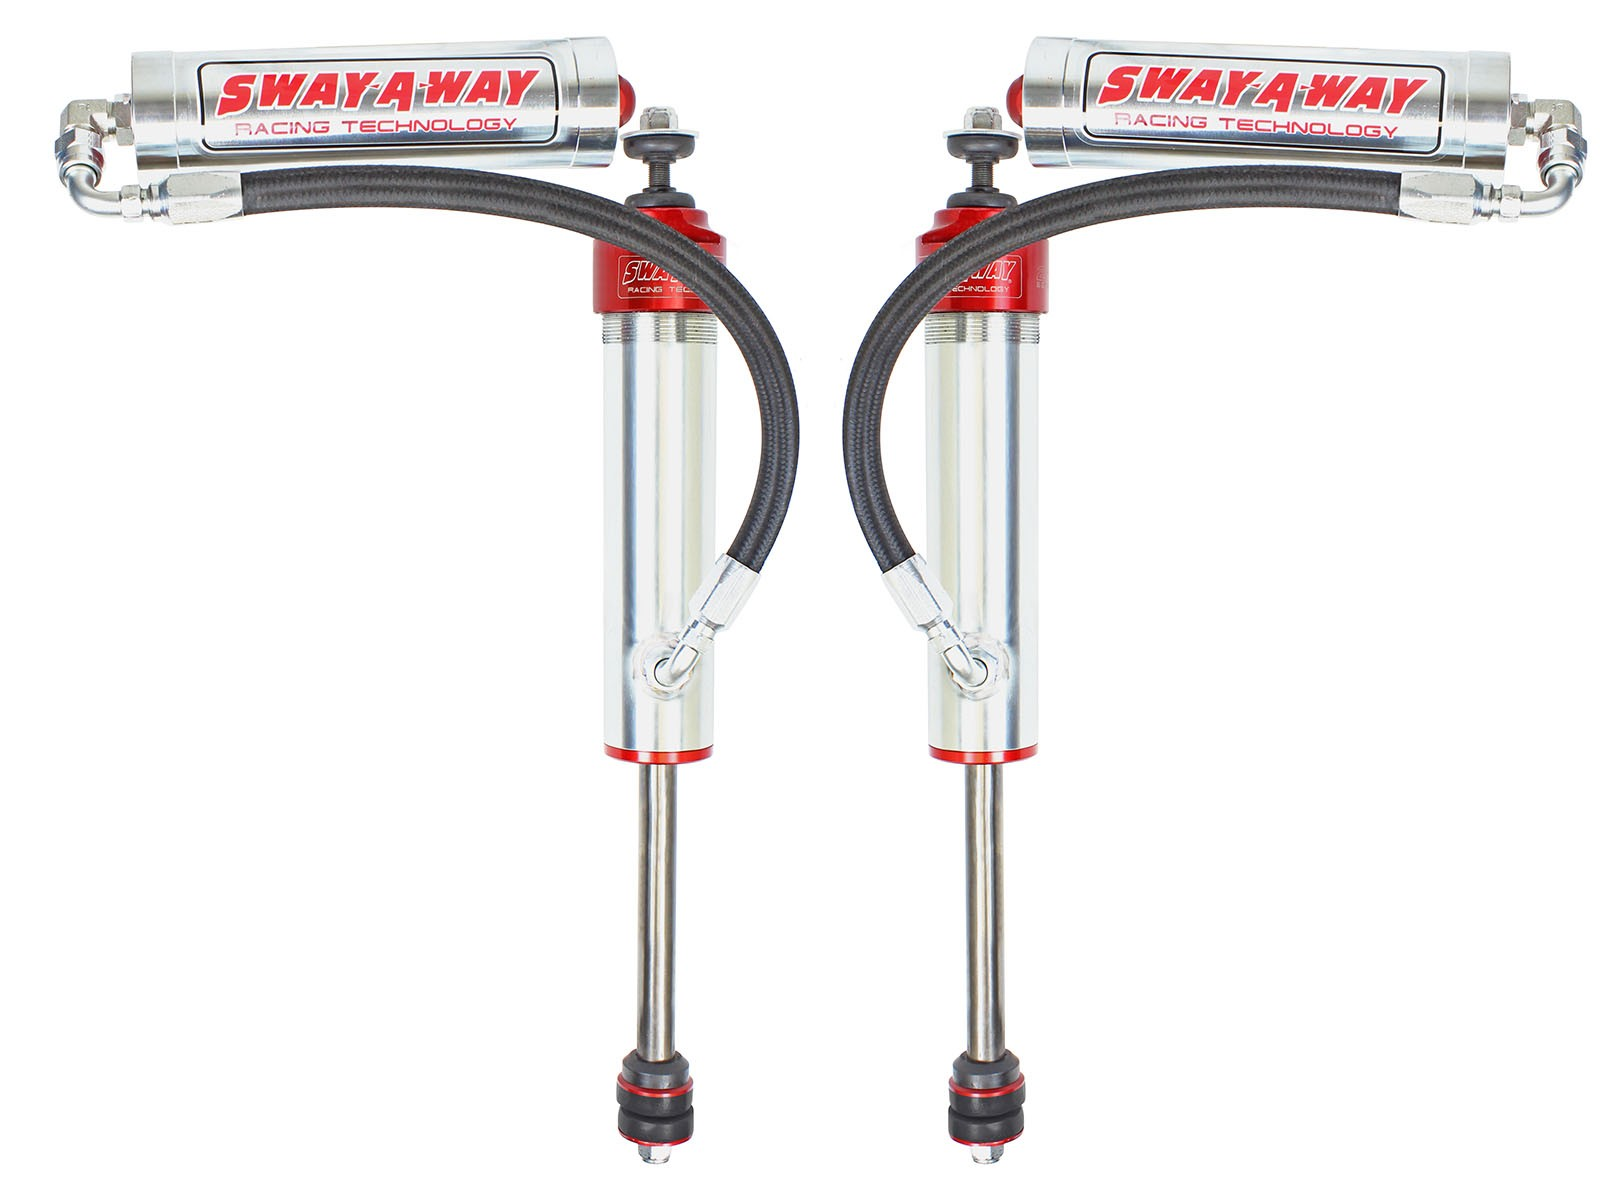 "Sway-A-Way 201-5600-05 aFe Control Sway-A-Way 2.5"" Front Shock Kit w/ Remote Reservoir"